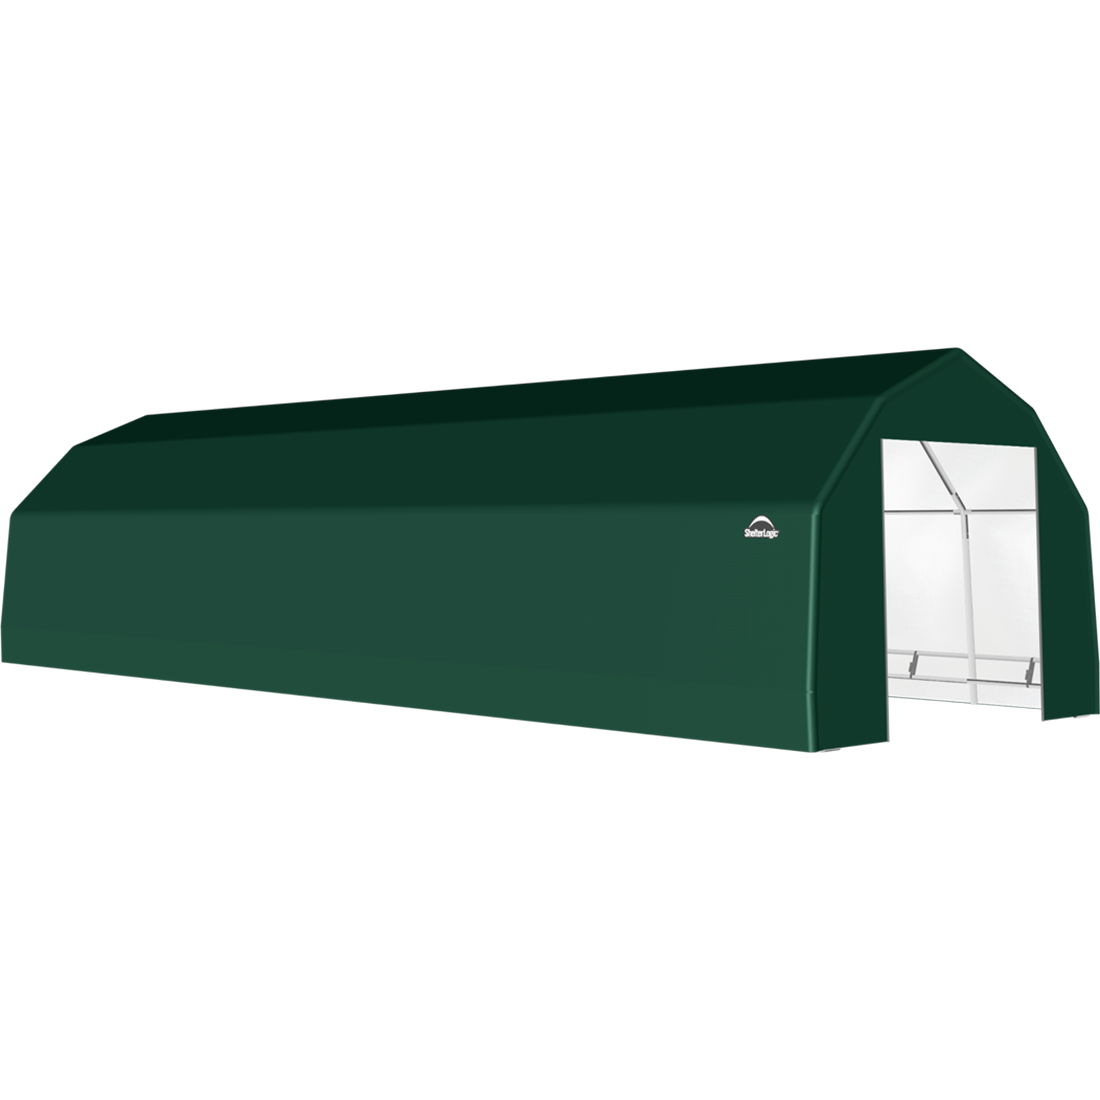 ShelterTech SP Series Barn Shelter, 15 ft. x 44 ft. x 11 ft. Heavy Duty PVC 14.5 oz. Green